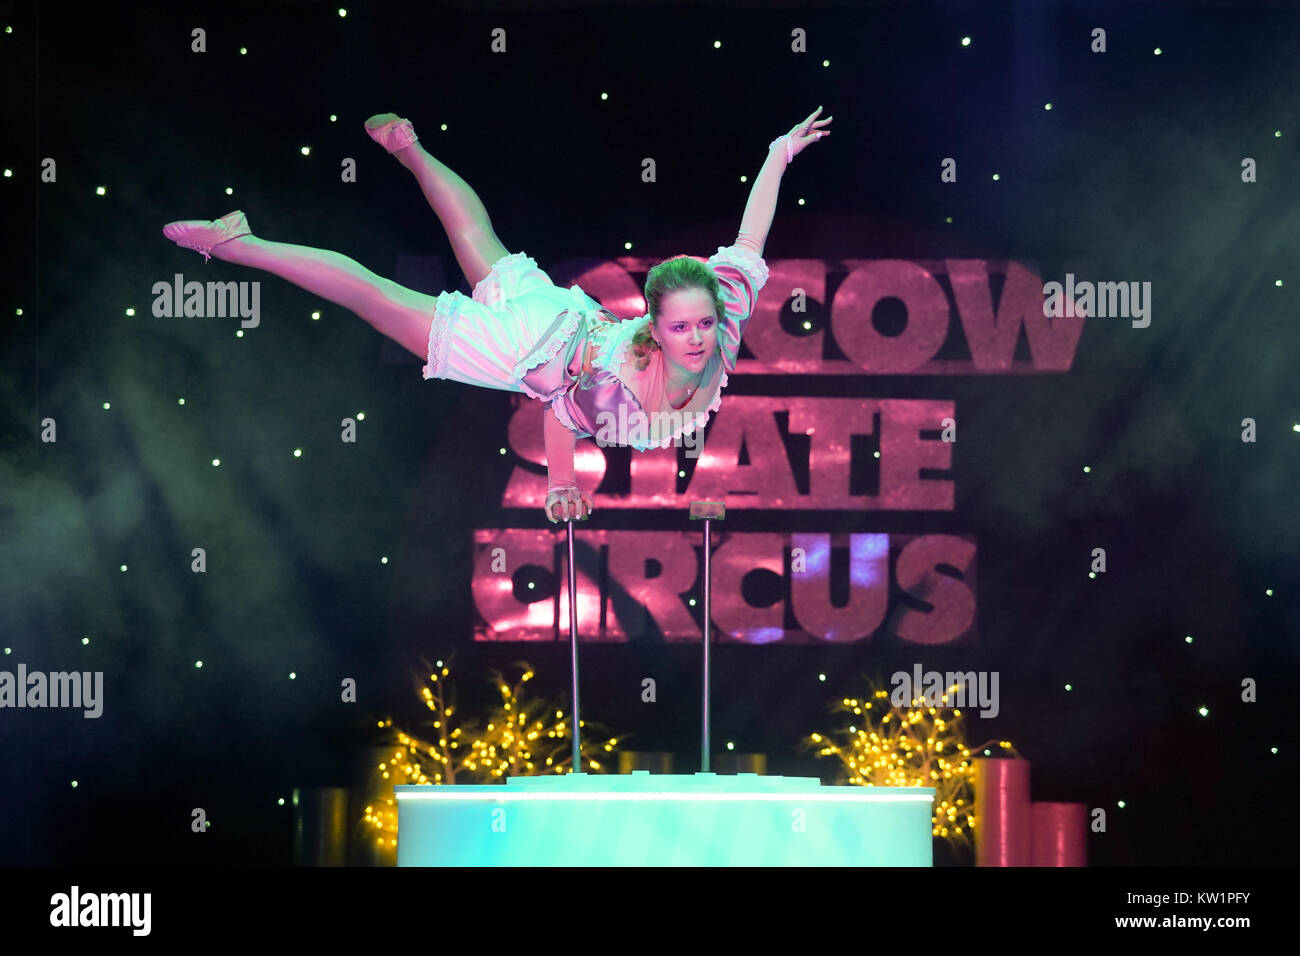 dating circus performer Las vegas dating and personals new to the internet dating website stuff so i'm extremely tiny elite level circus tiny elite level circus performer.